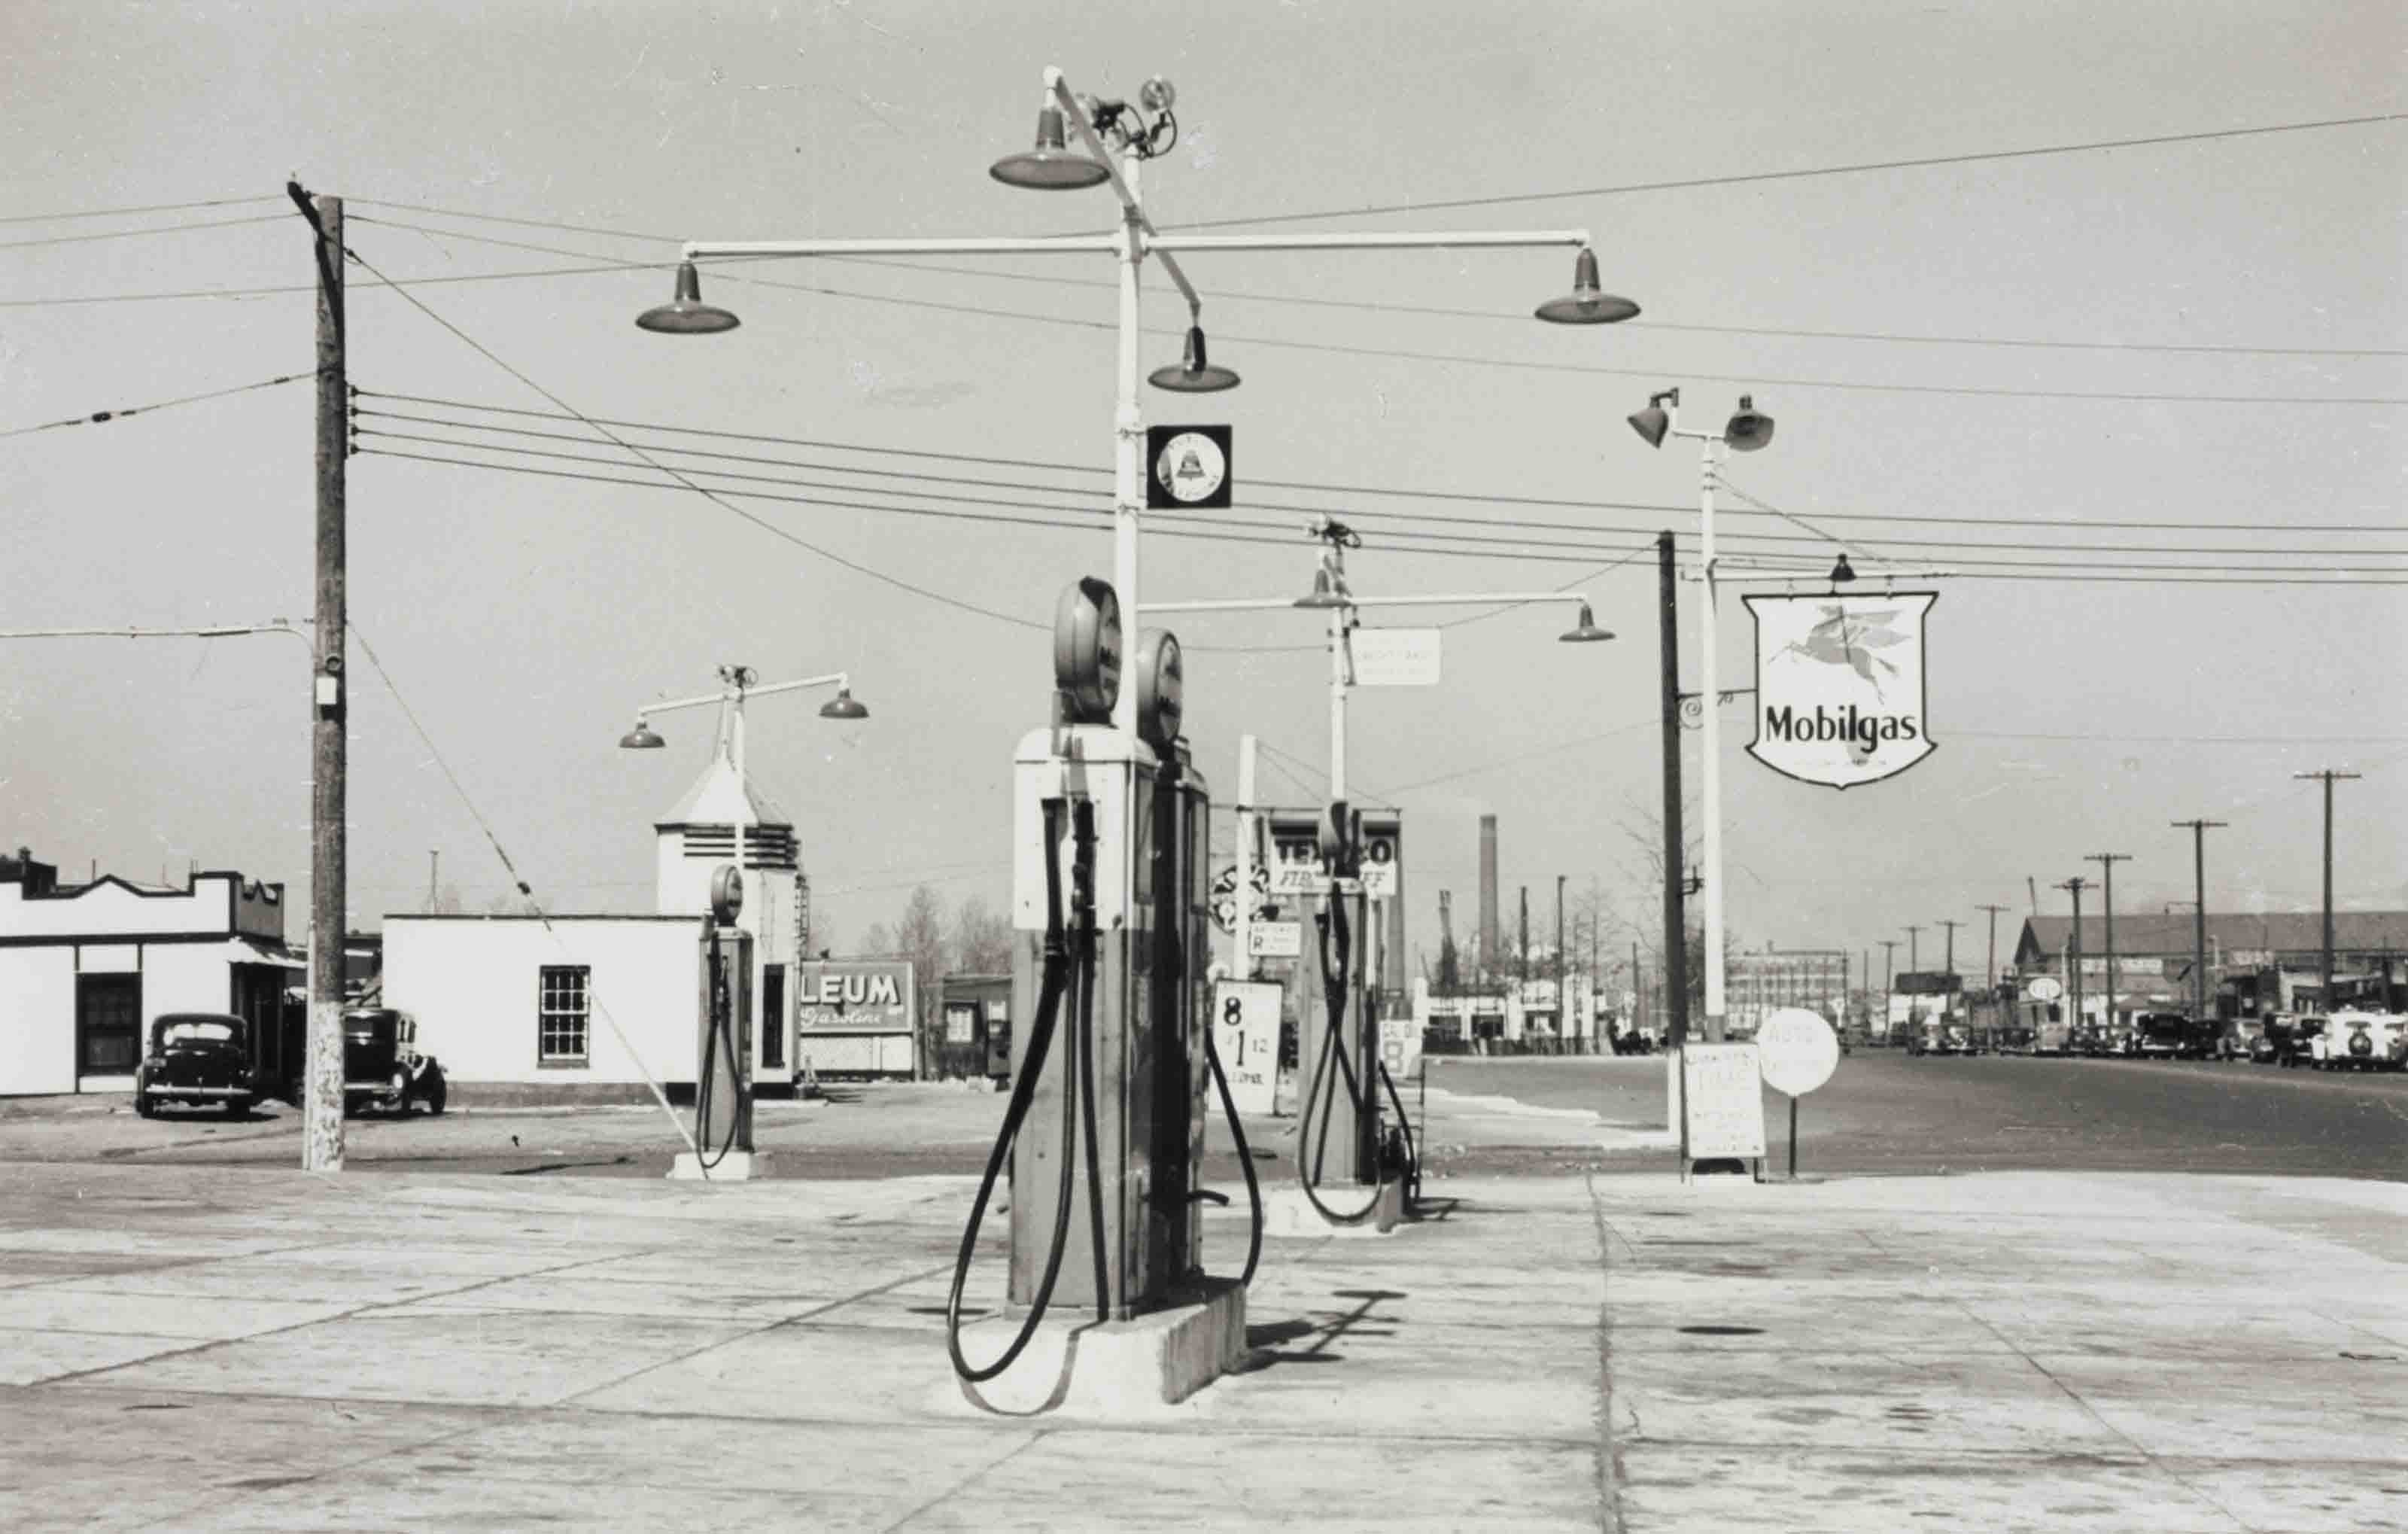 Mobilgas, Astoria, Queens, 1940